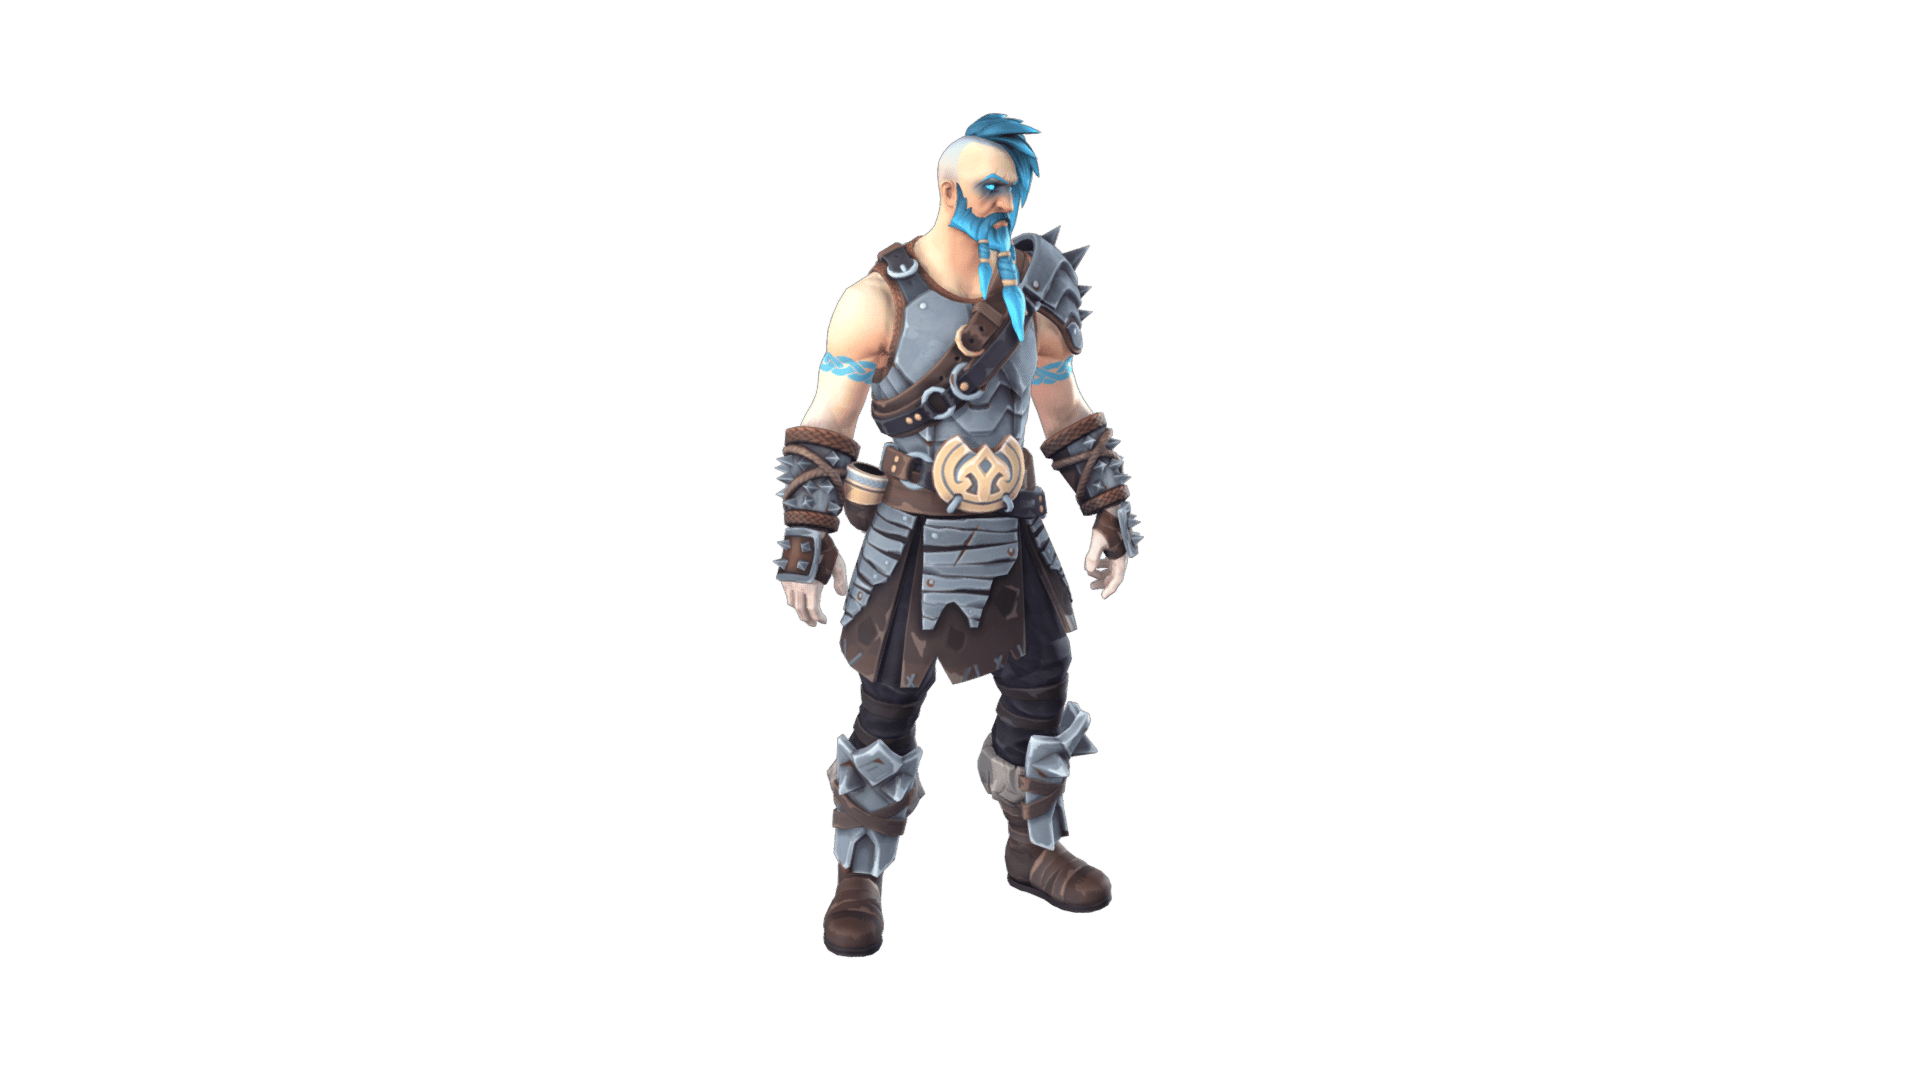 Fortnite Ragnarok | Outfits - Fortnite Skins